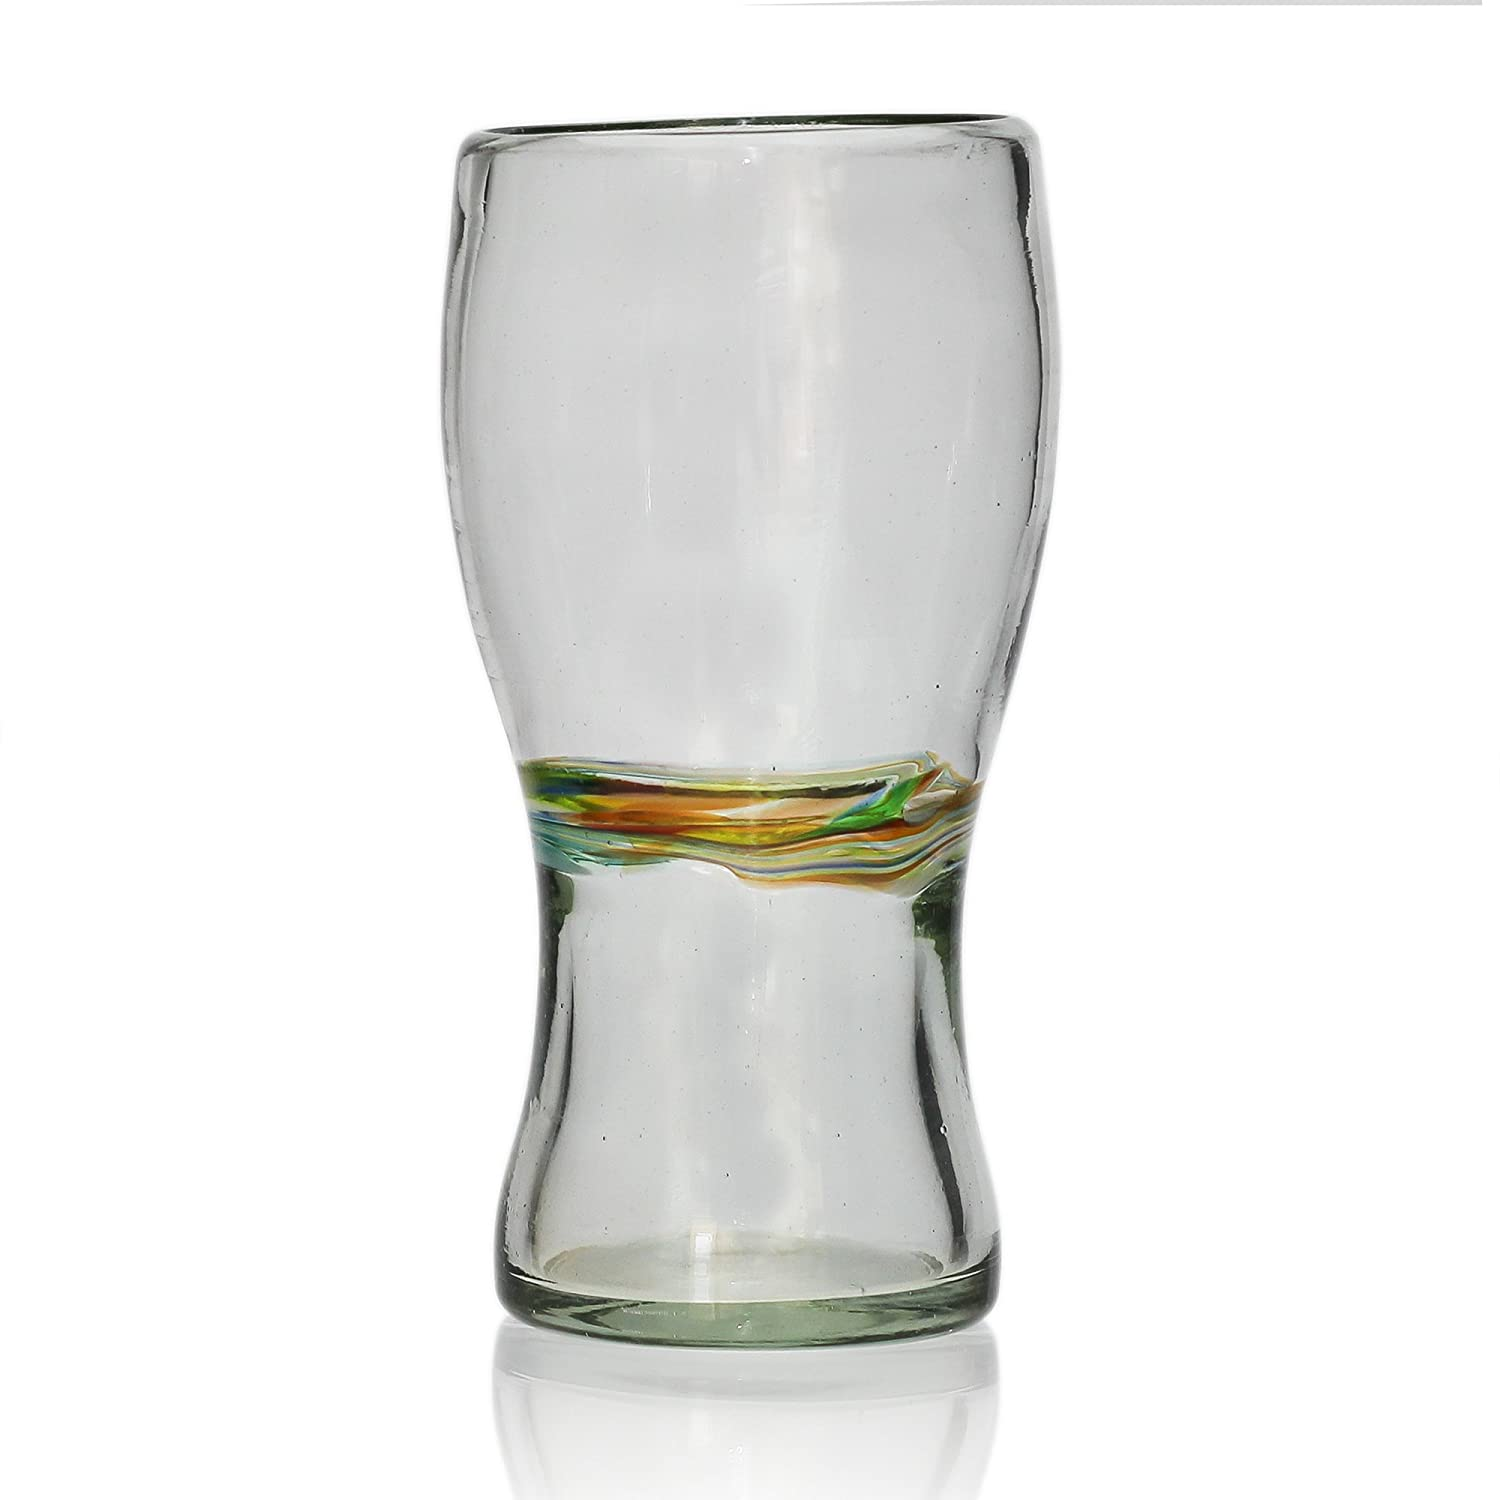 Pint shaped glass (450 ml), multi-stripe, hand blown from recycled glass - fair trade and handmade in Mexico Tumia LAC